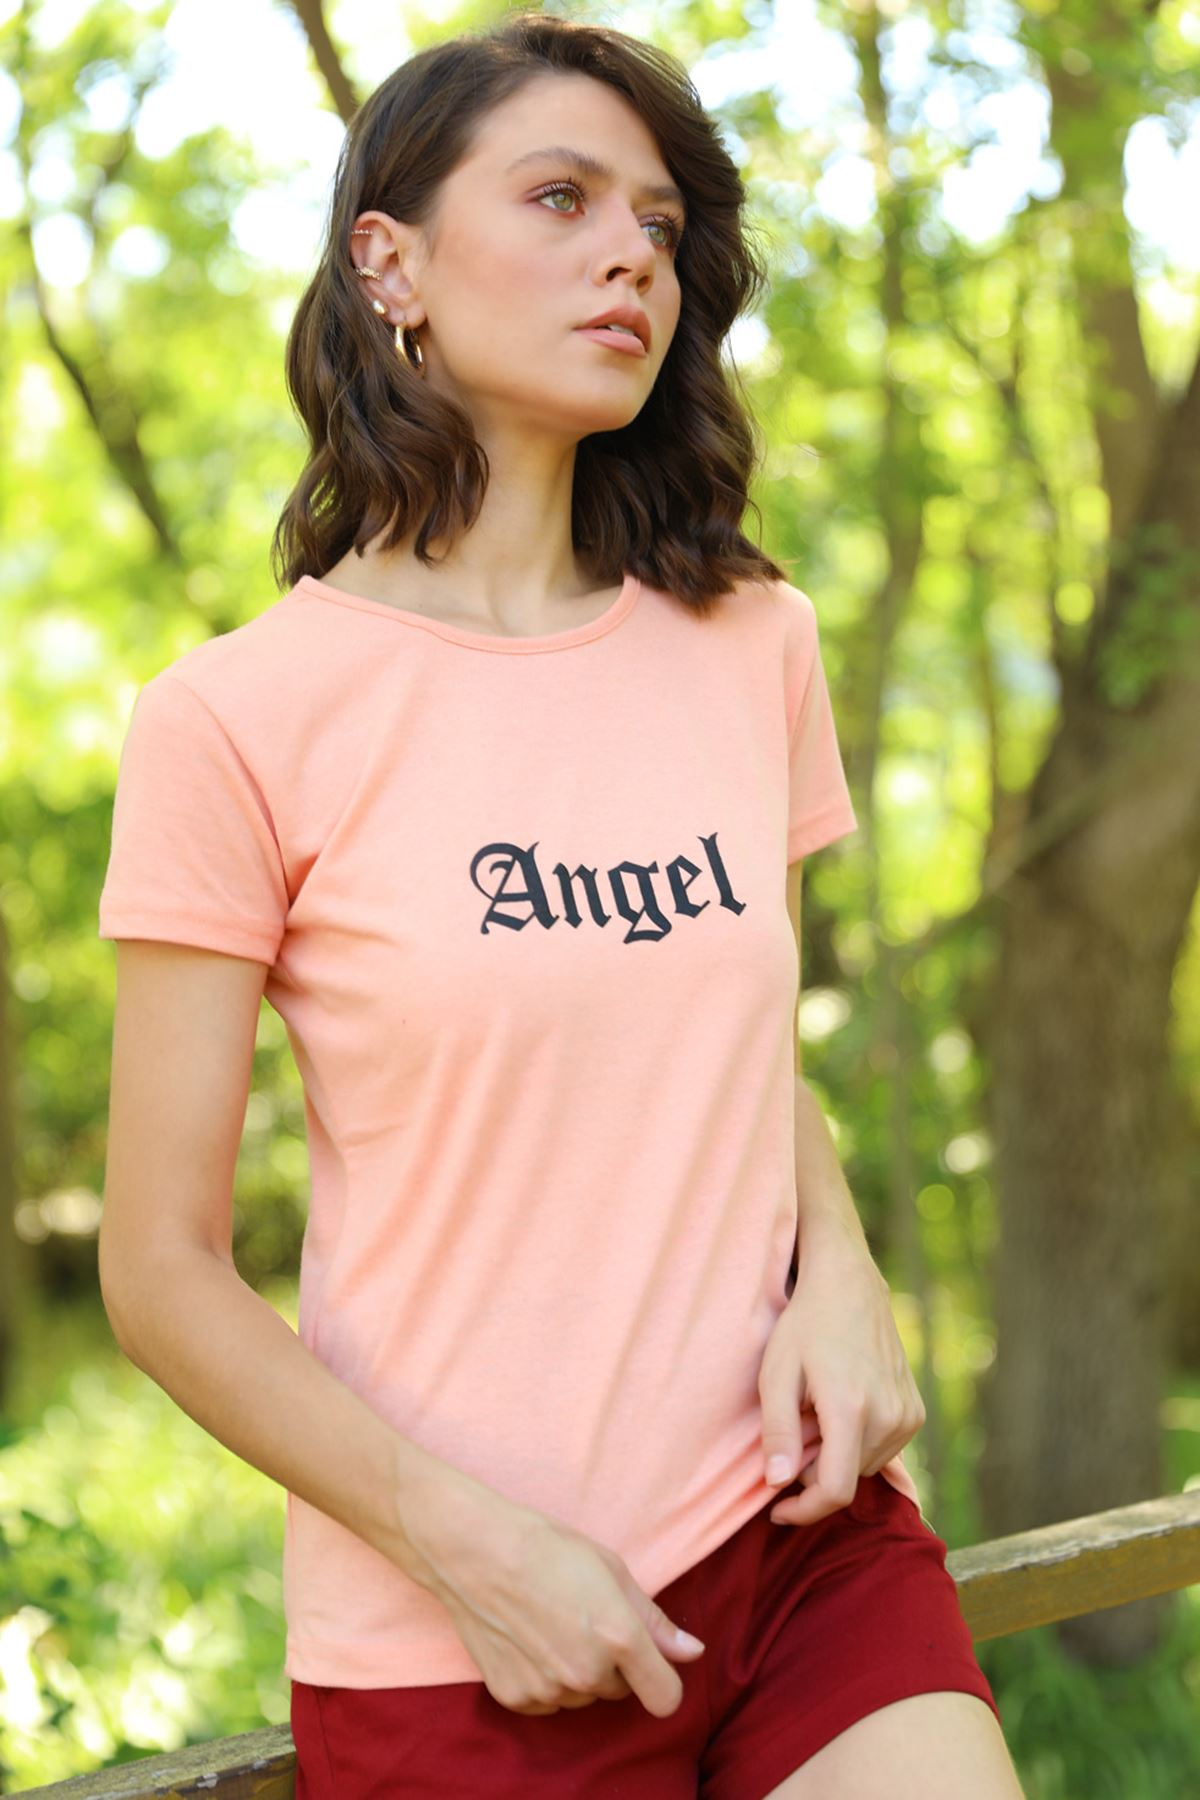 PRT-067 ANGEL BASKILI T-SHİRT-SOMON